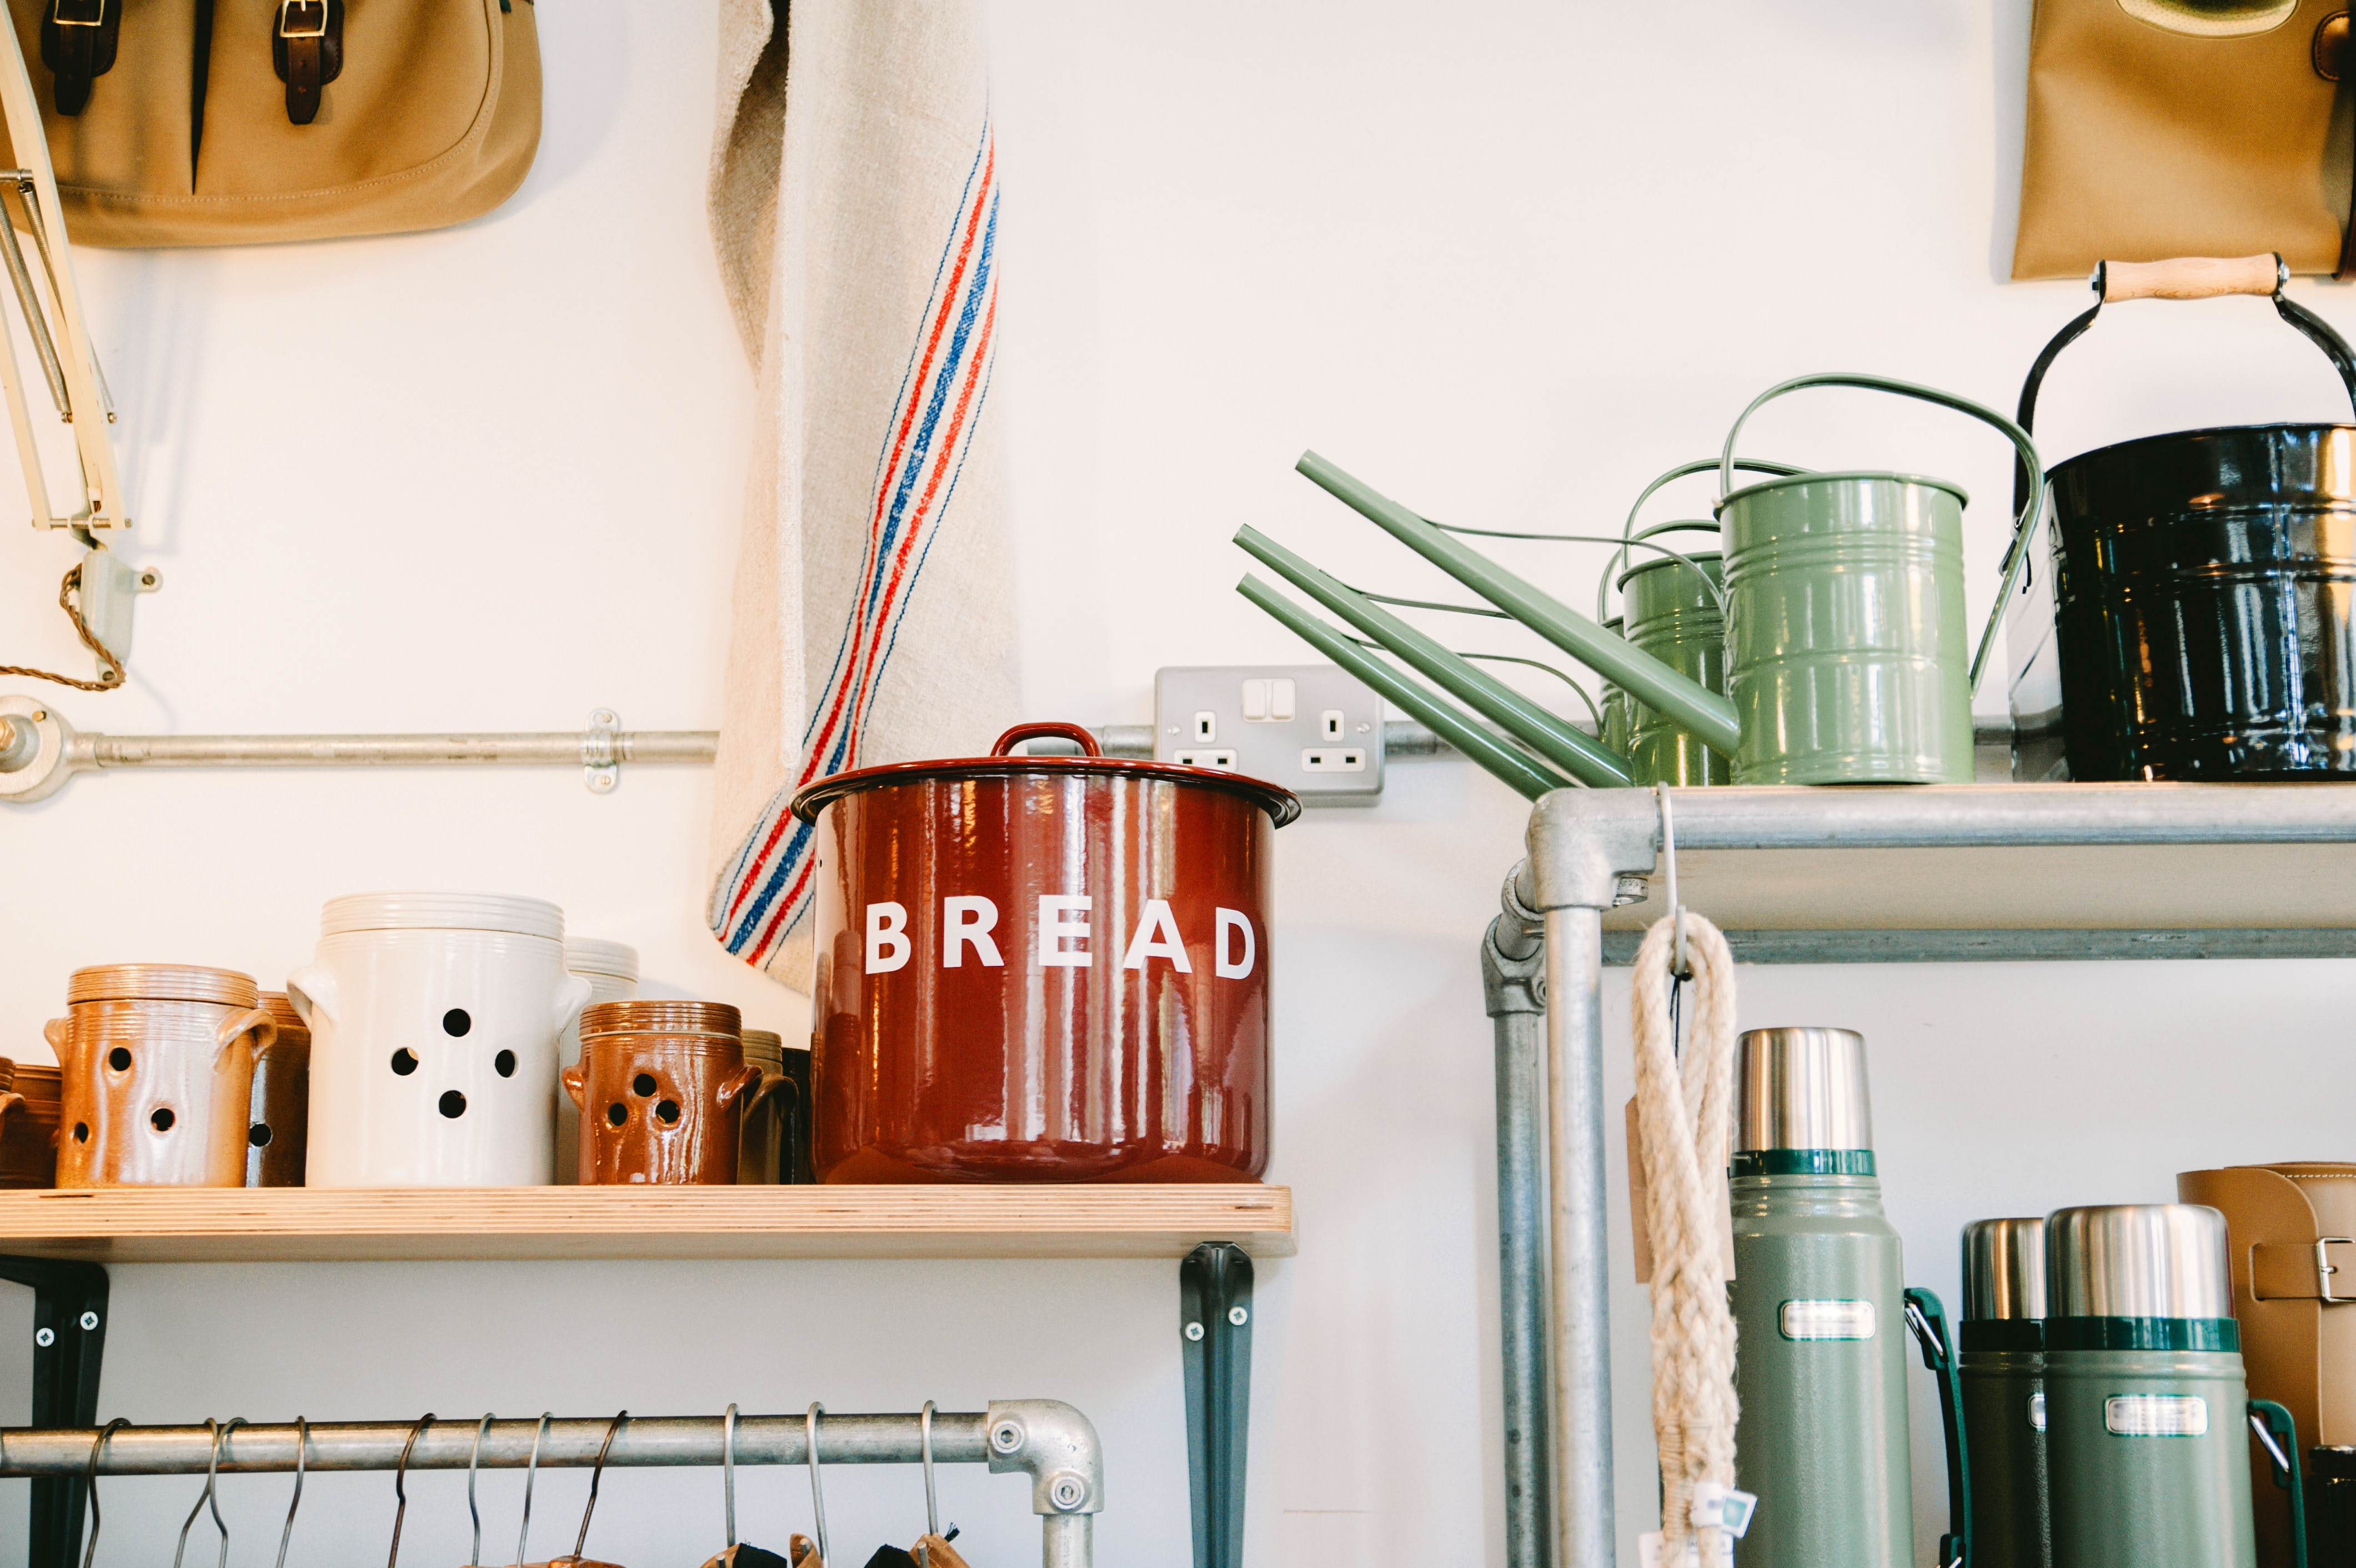 An in-depth review of the best kitchen carts available in 2019.